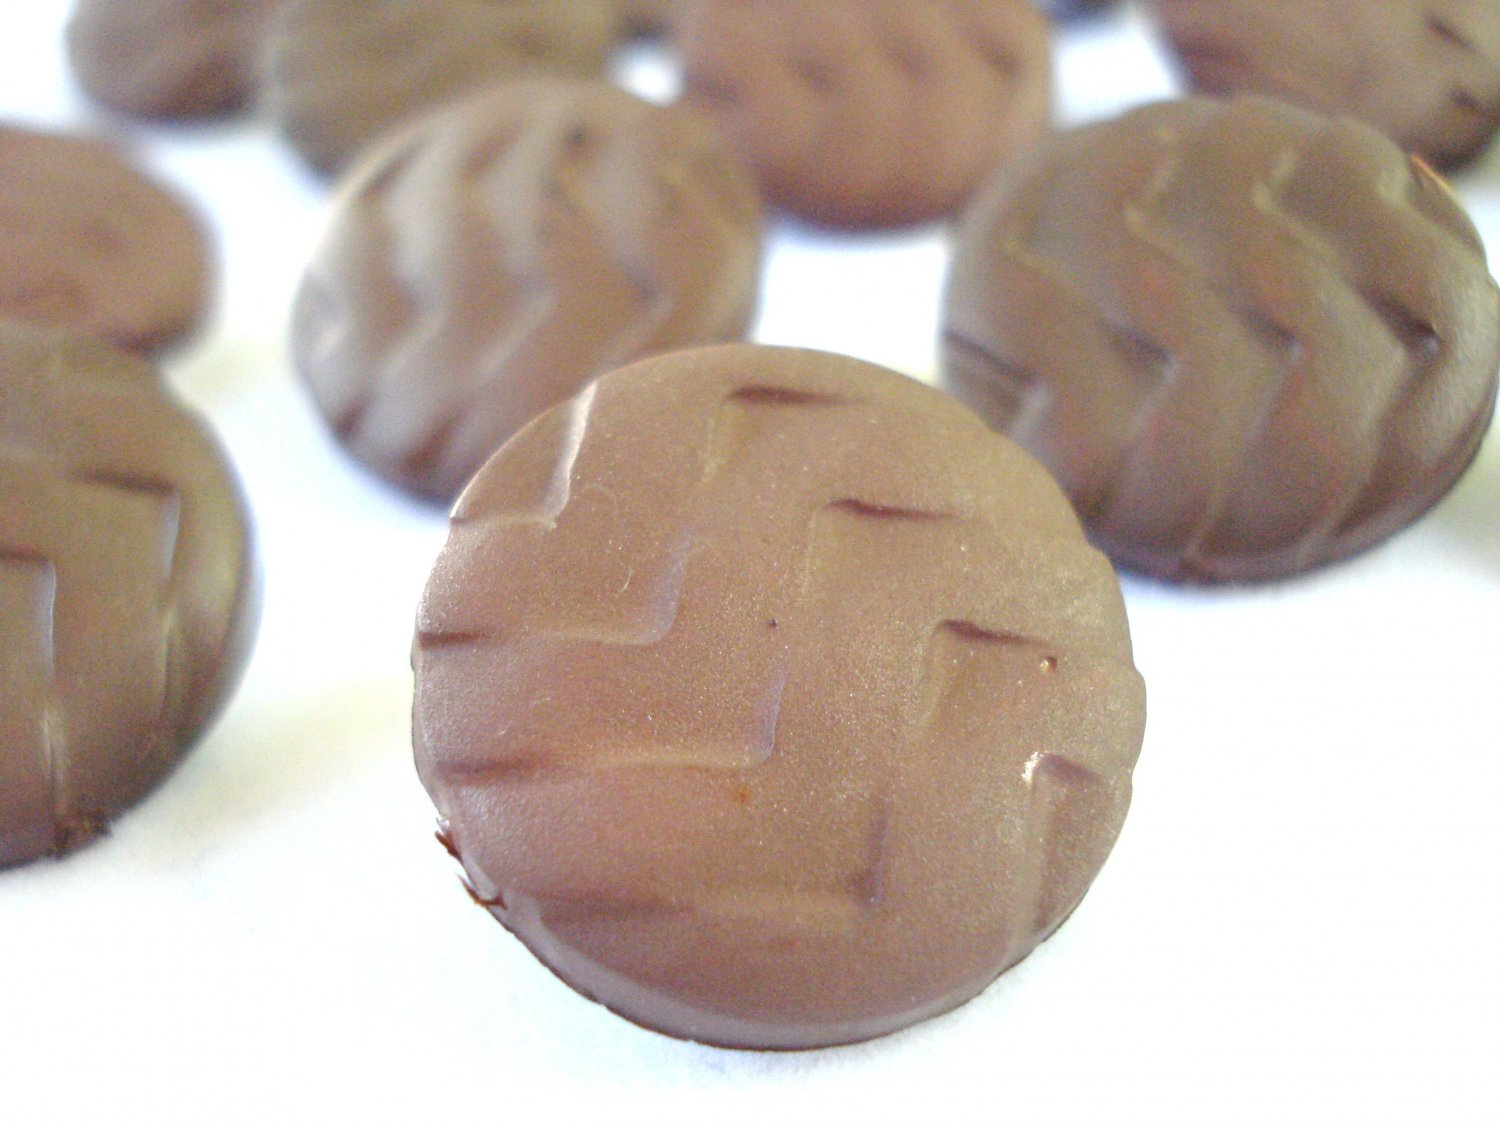 Lot of 16 molded plastic buttons brown chevron vintage hc2975